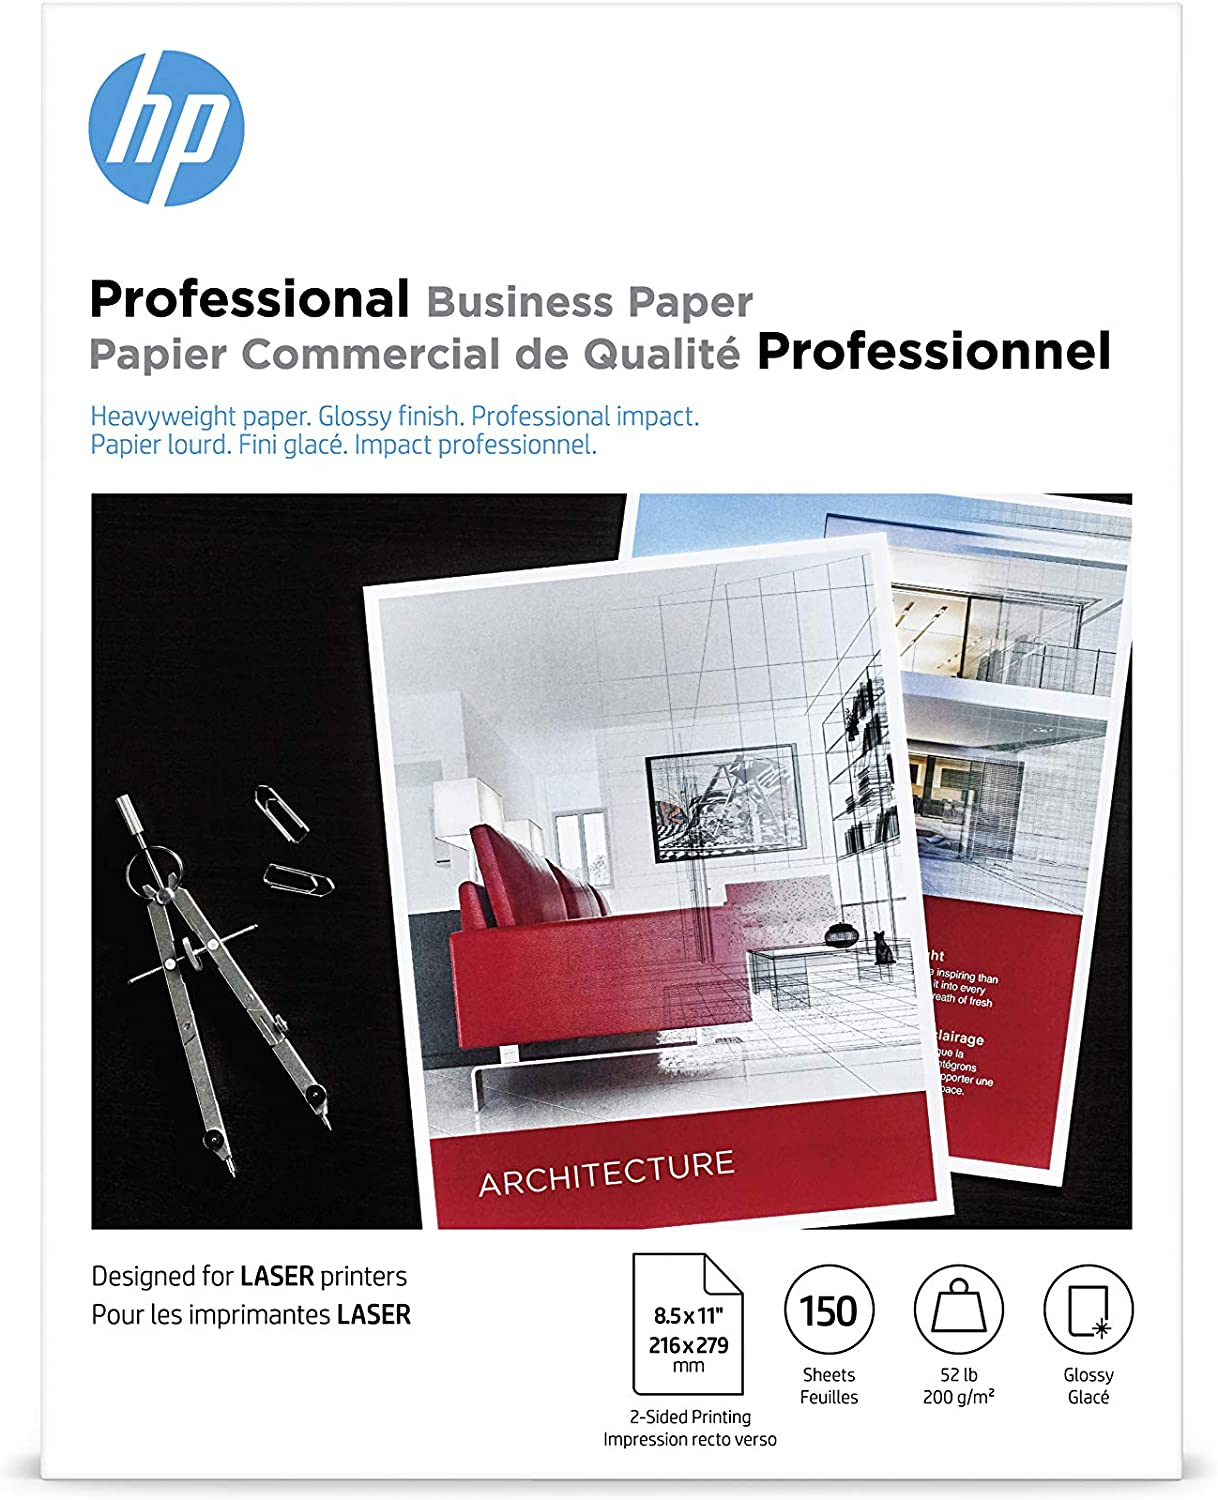 HP Professional Business Paper | Glossy Laser | 8.5x11 | 150 Sheets